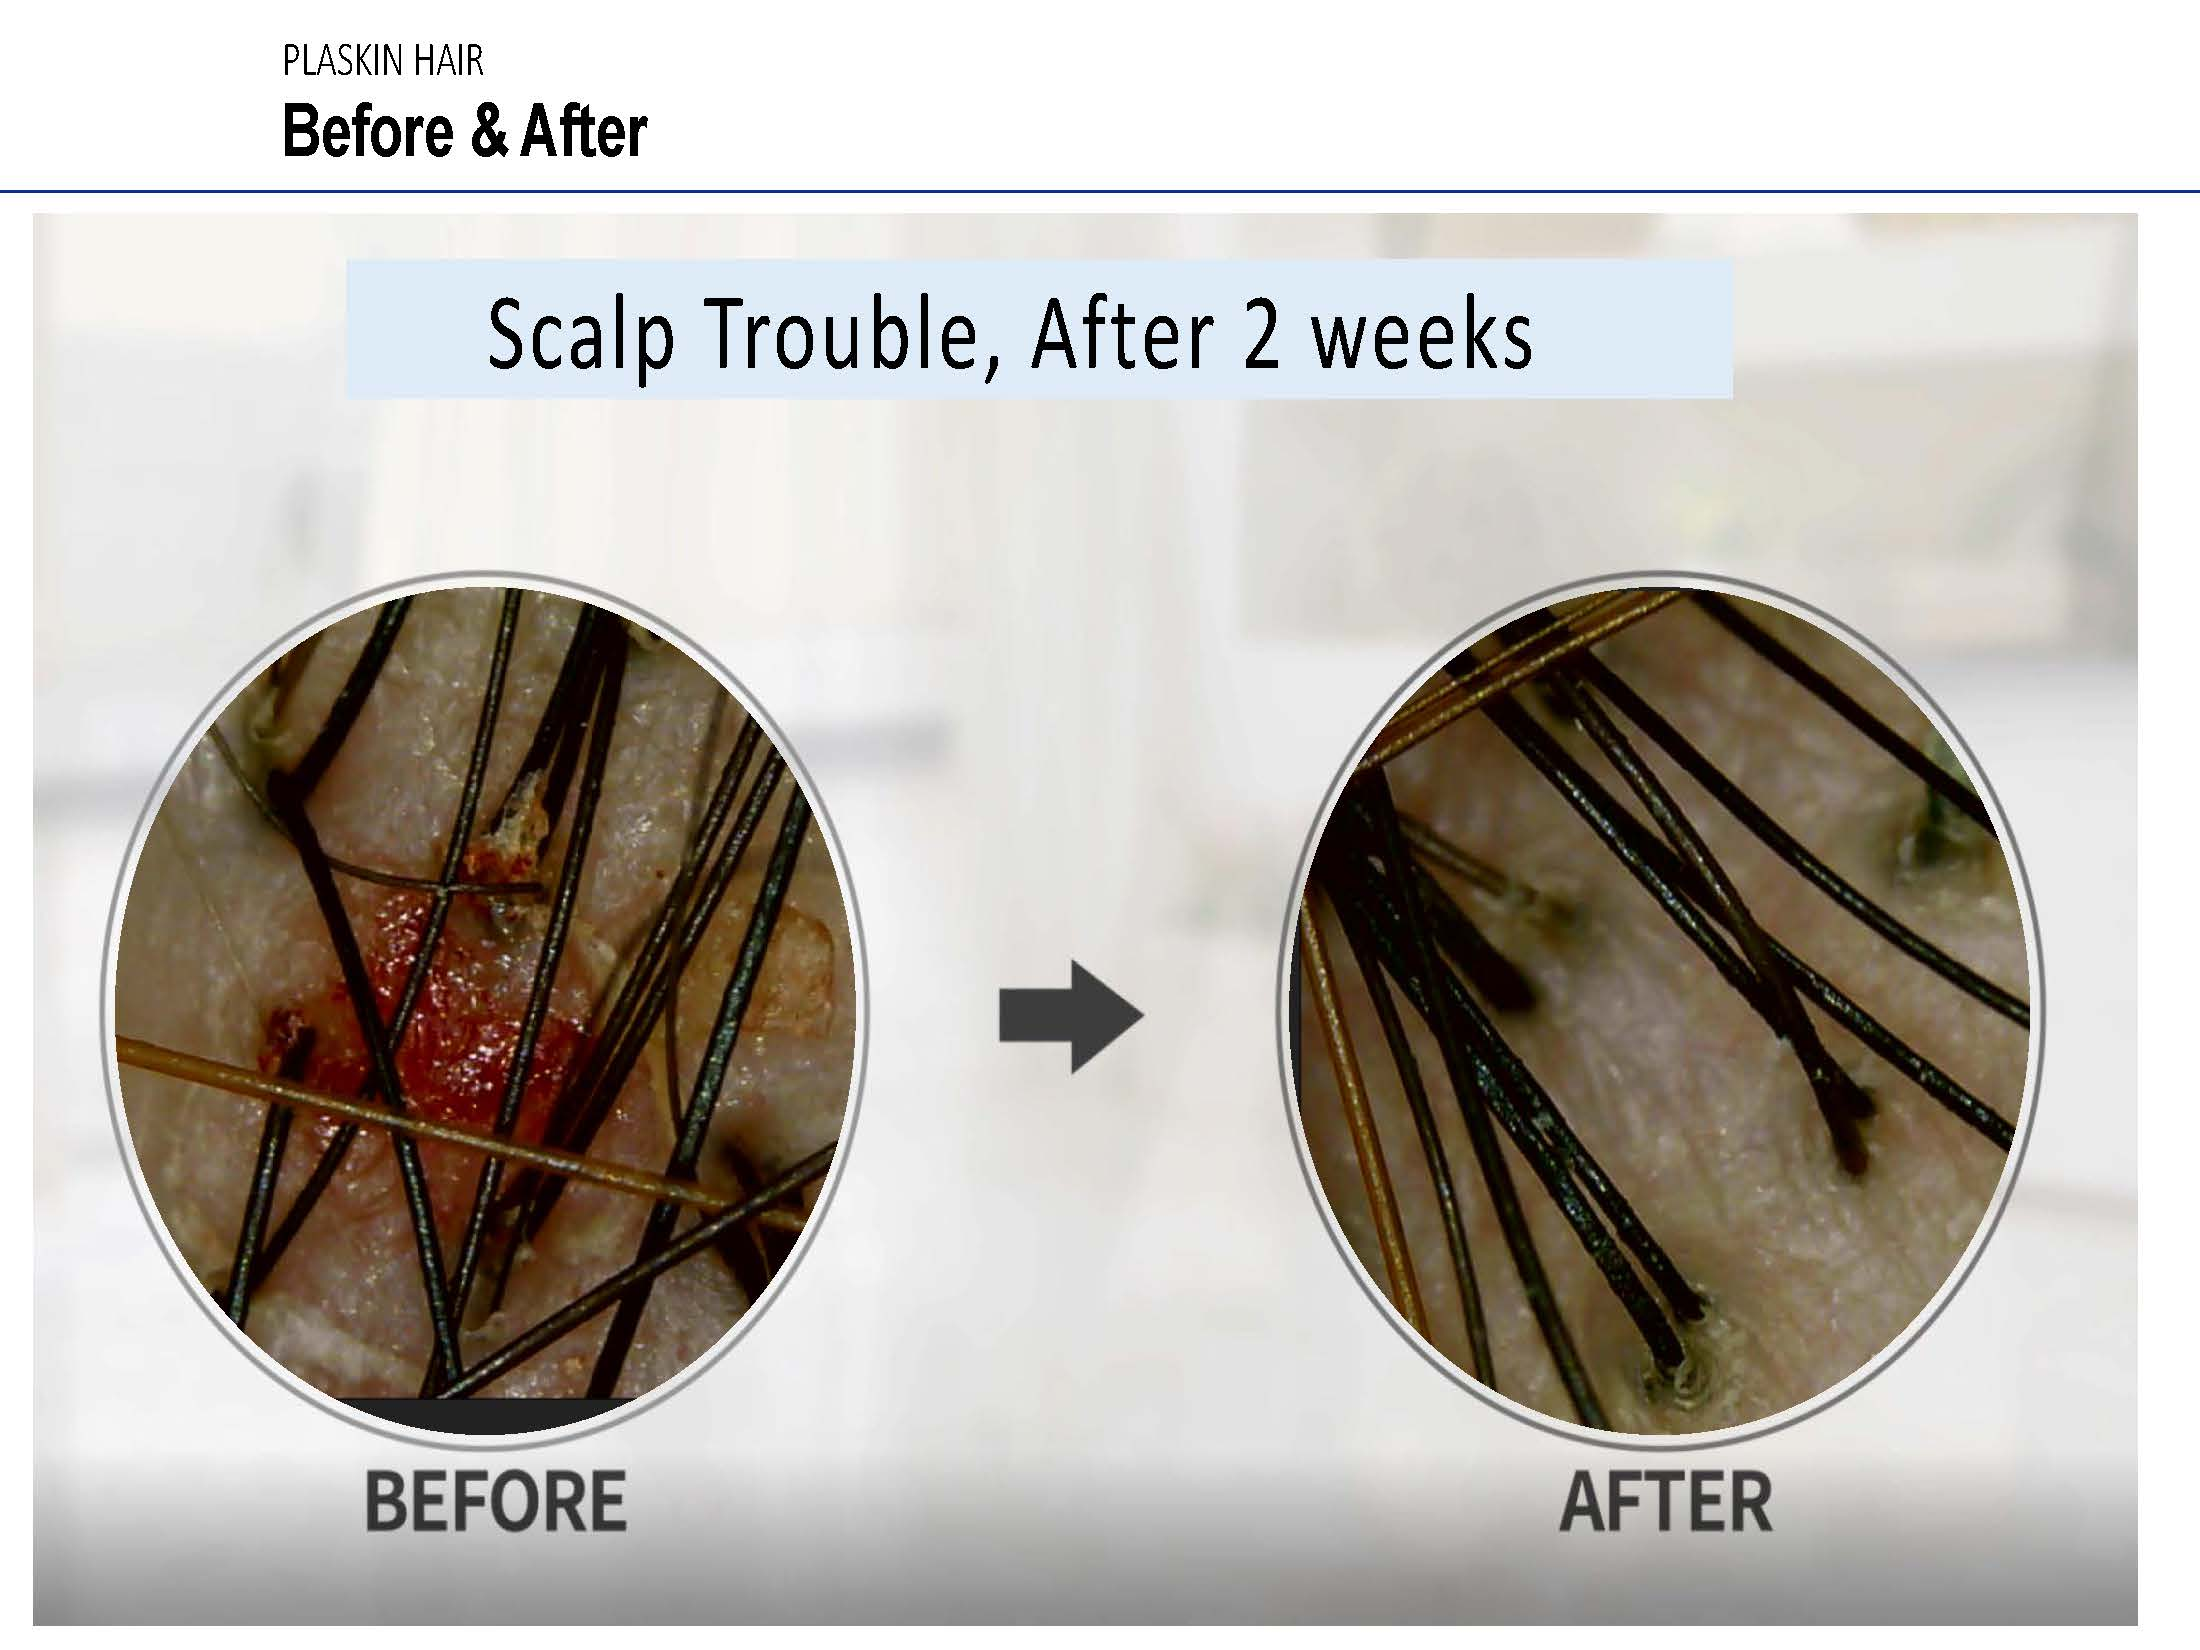 scalp trouble examples__Page_13.jpg